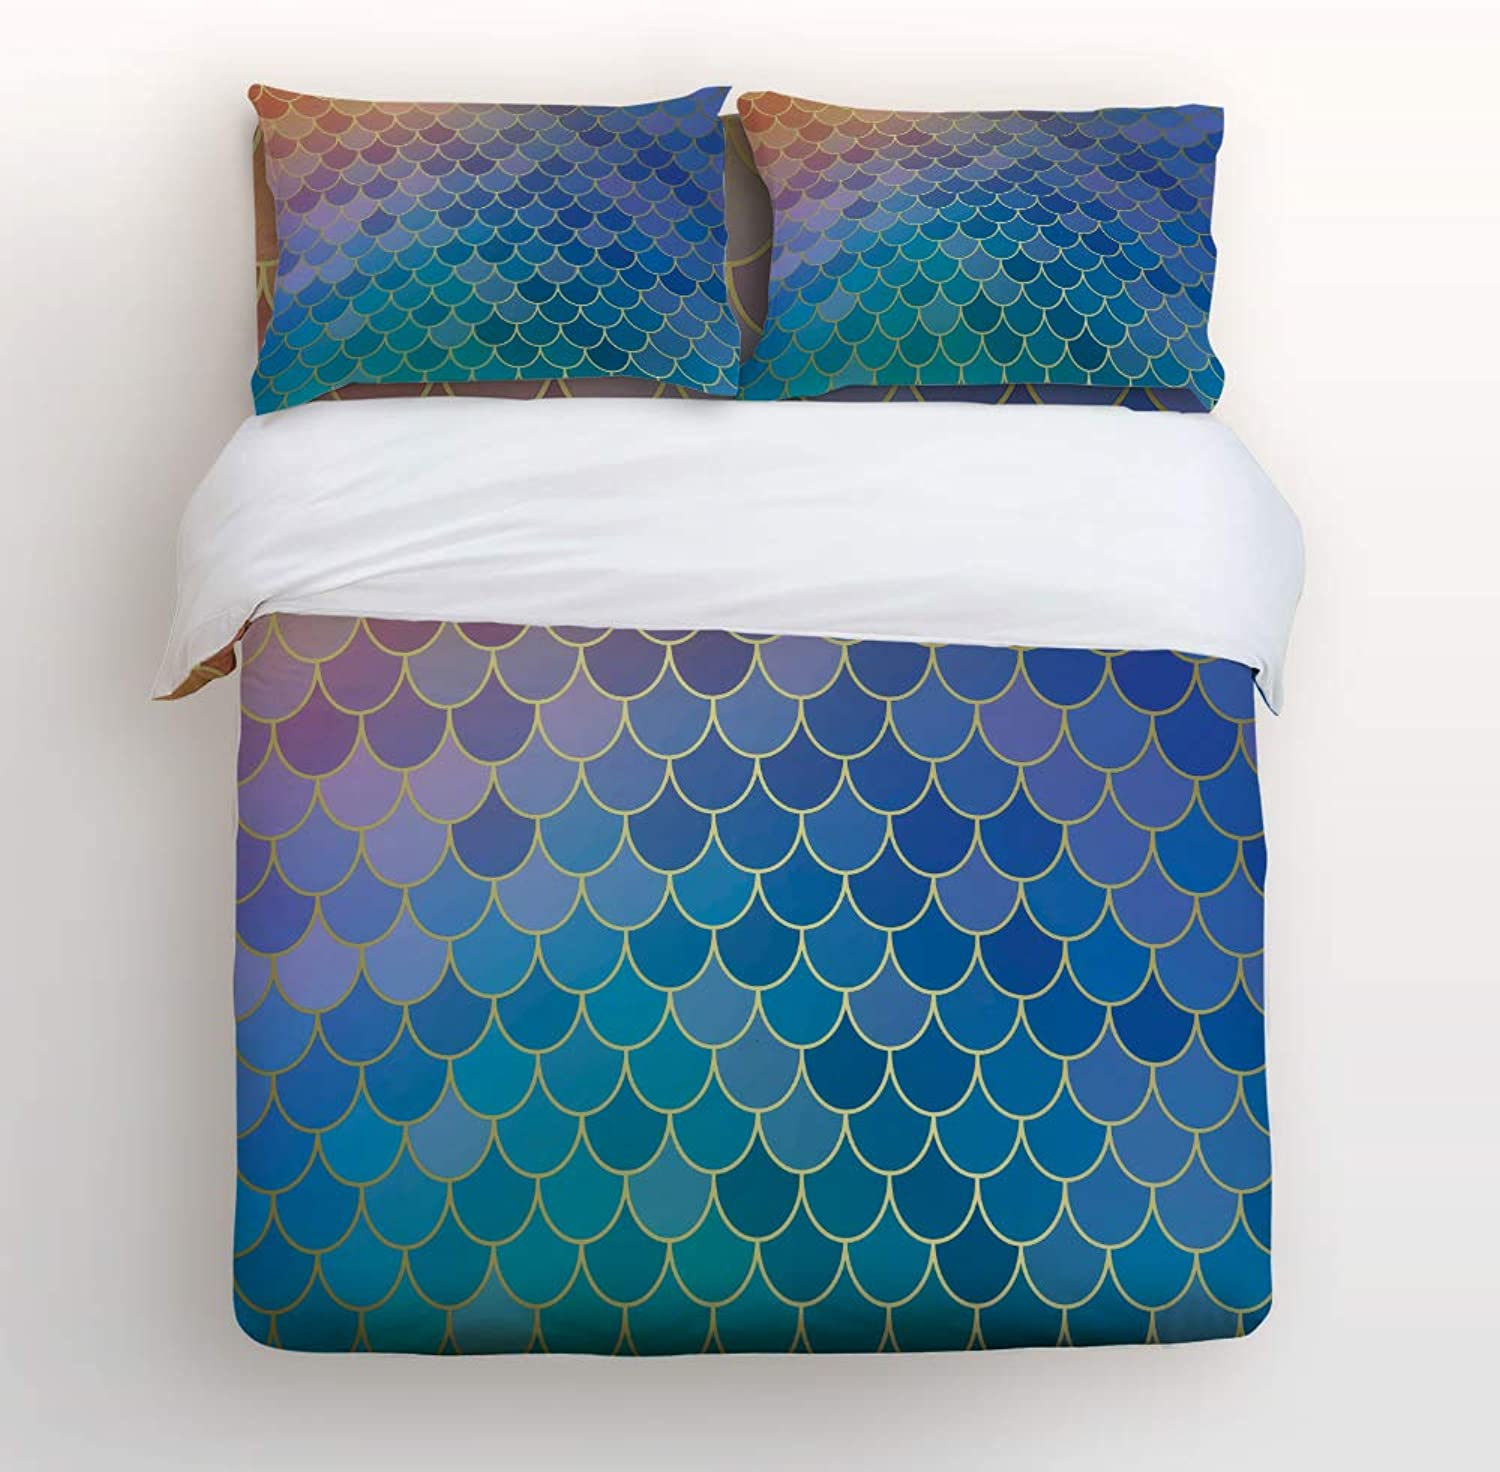 Fandim Fly Bedding Set Twin Size colorful Mermaid Tail Scale Geometric Pattern,Comforter Cover Sets for All Season